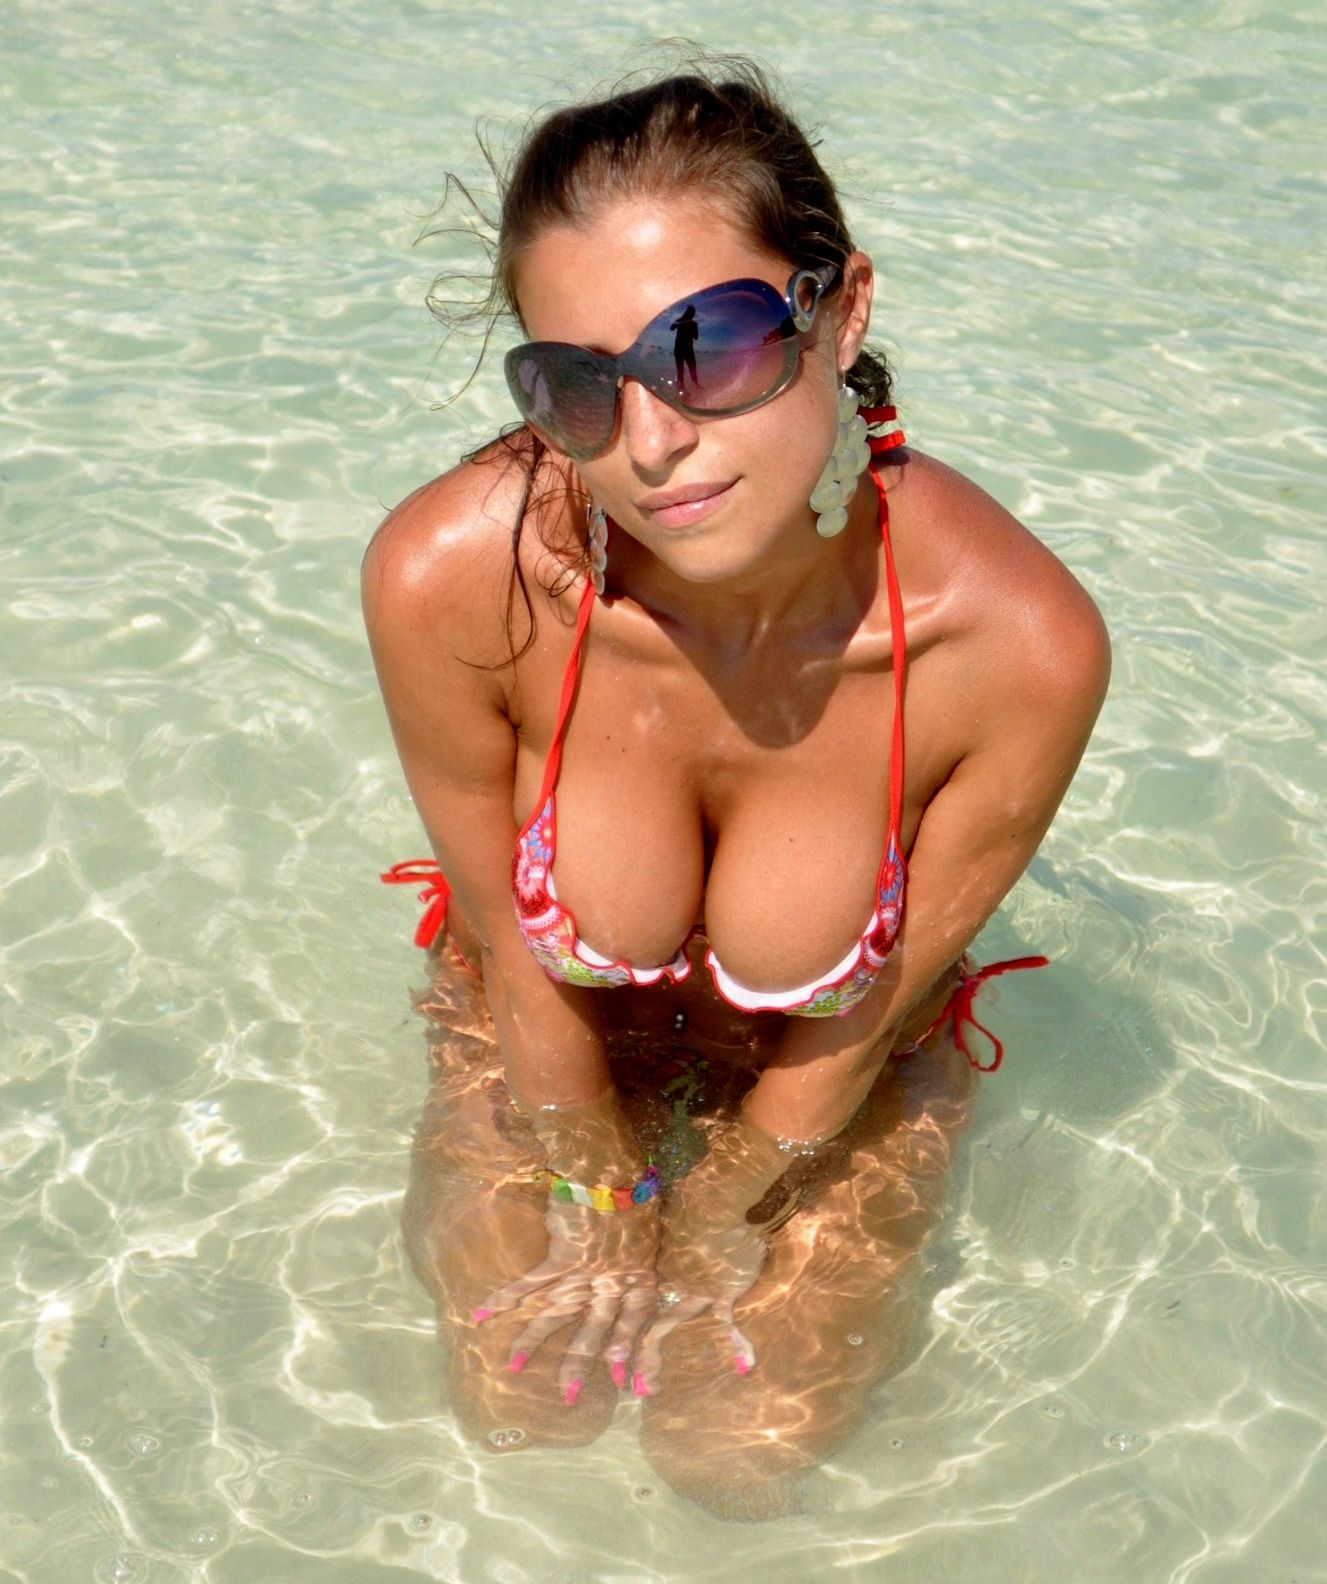 At girls beach the amateur Hot